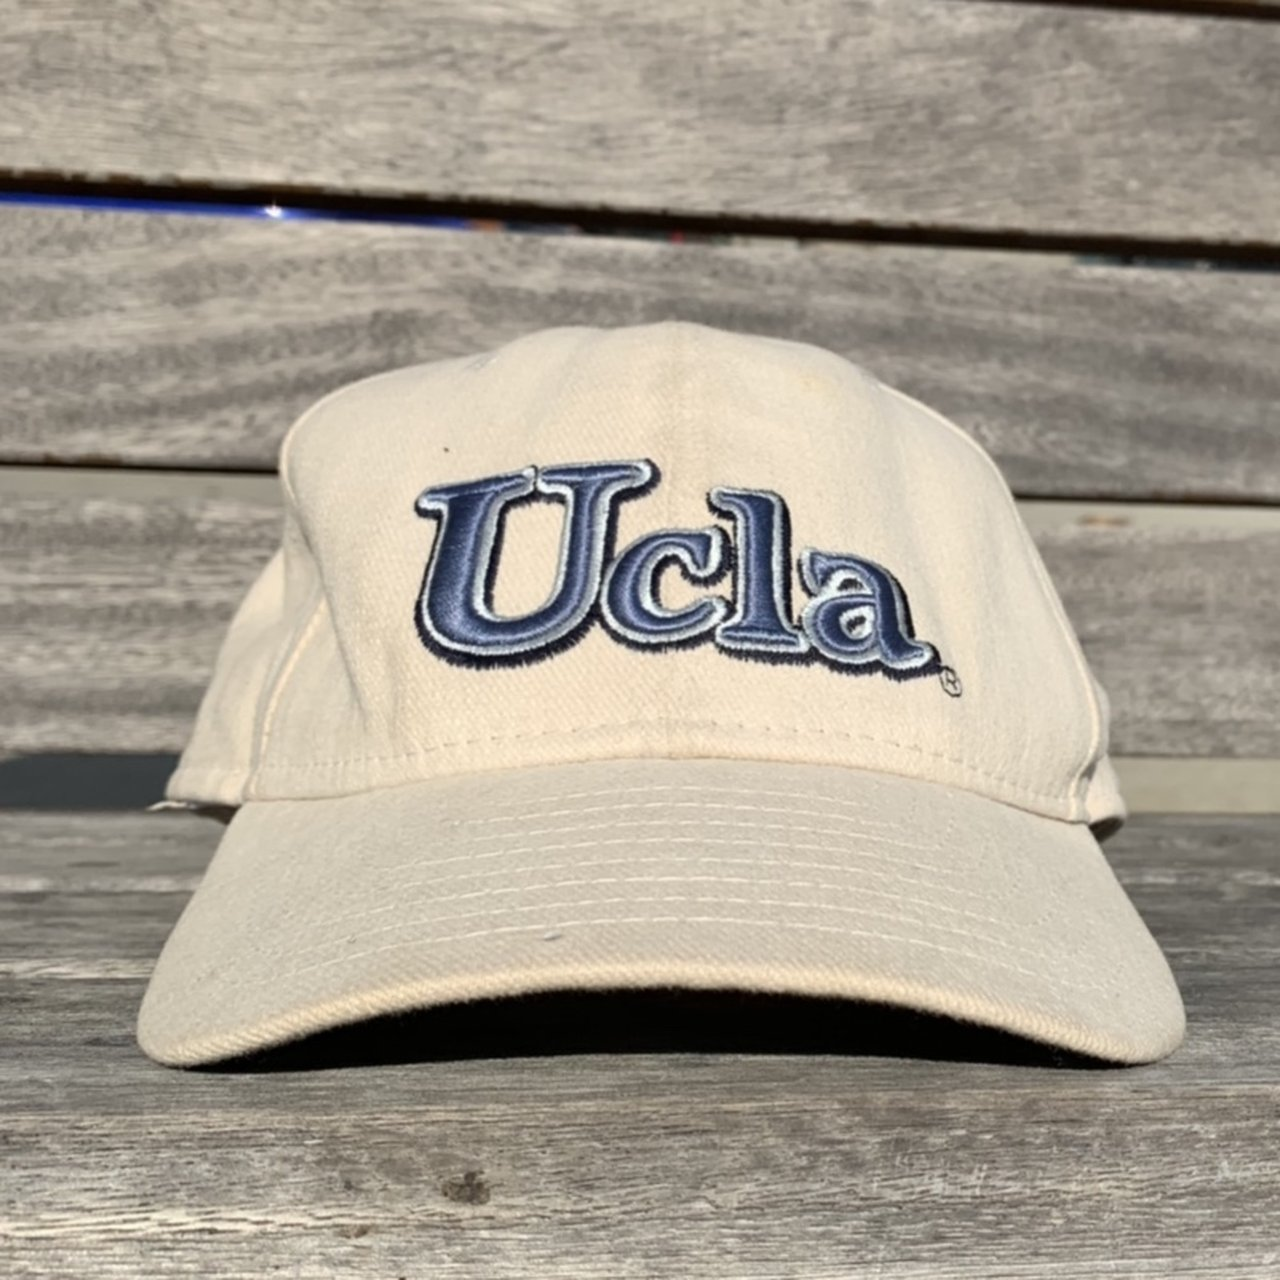 74d3dfd19cc Vintage new era UCLA hat very old piece. Stain inside the - Depop